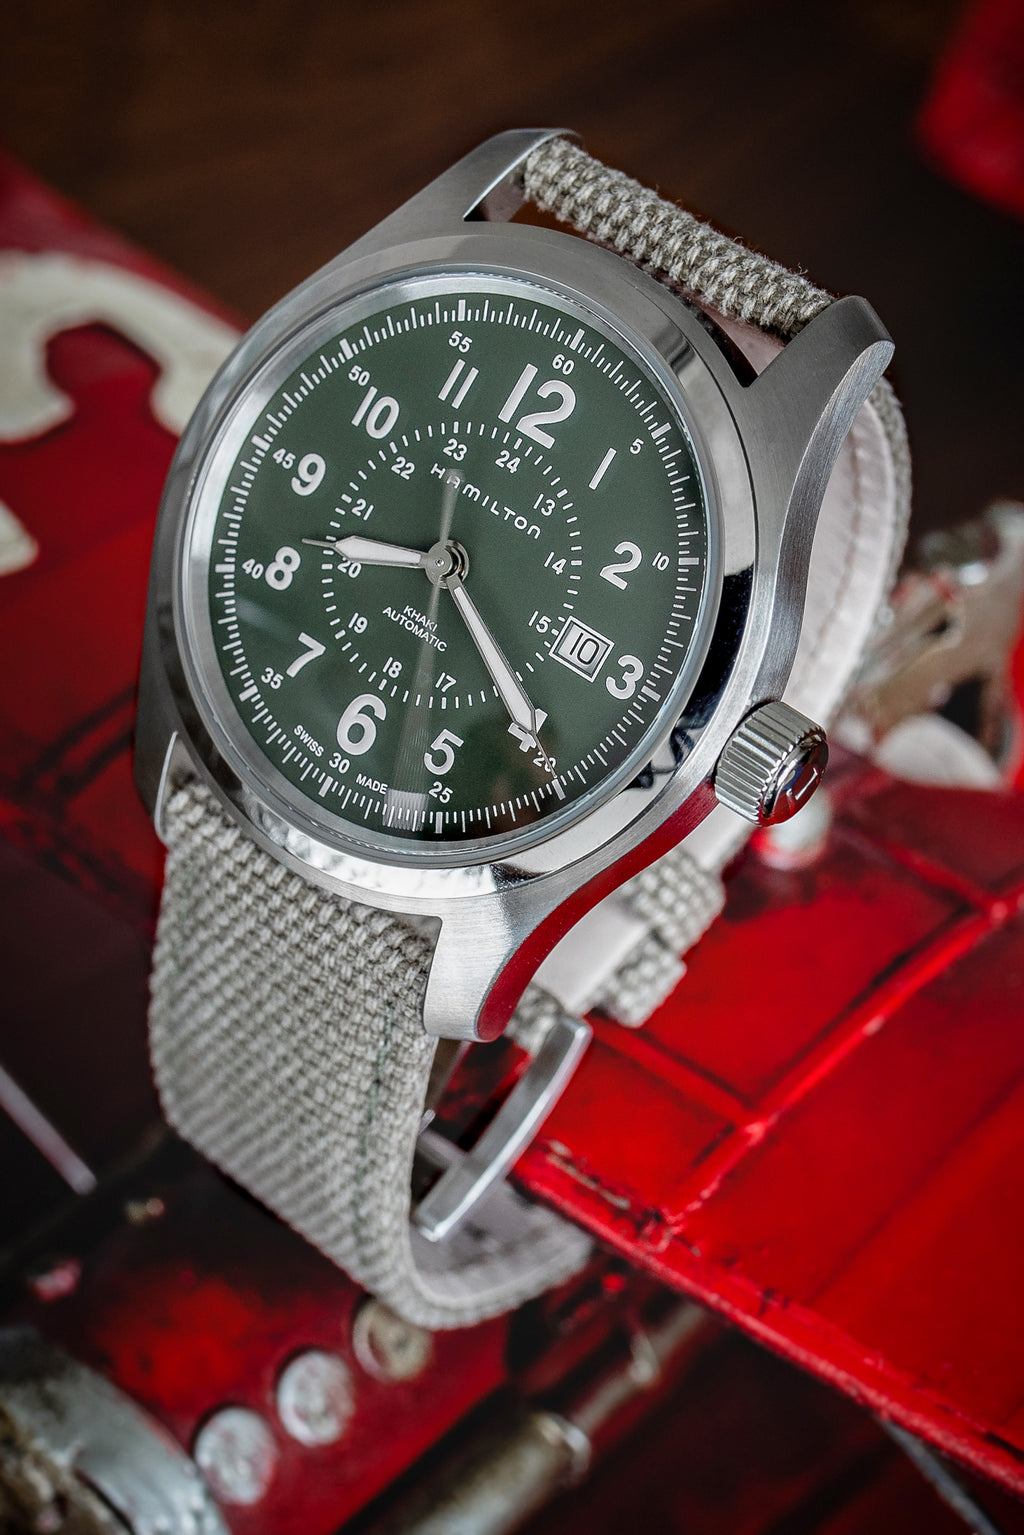 HAMILTON H70605963 Khaki Field Auto 42mm Watch - Green Khaki Dial